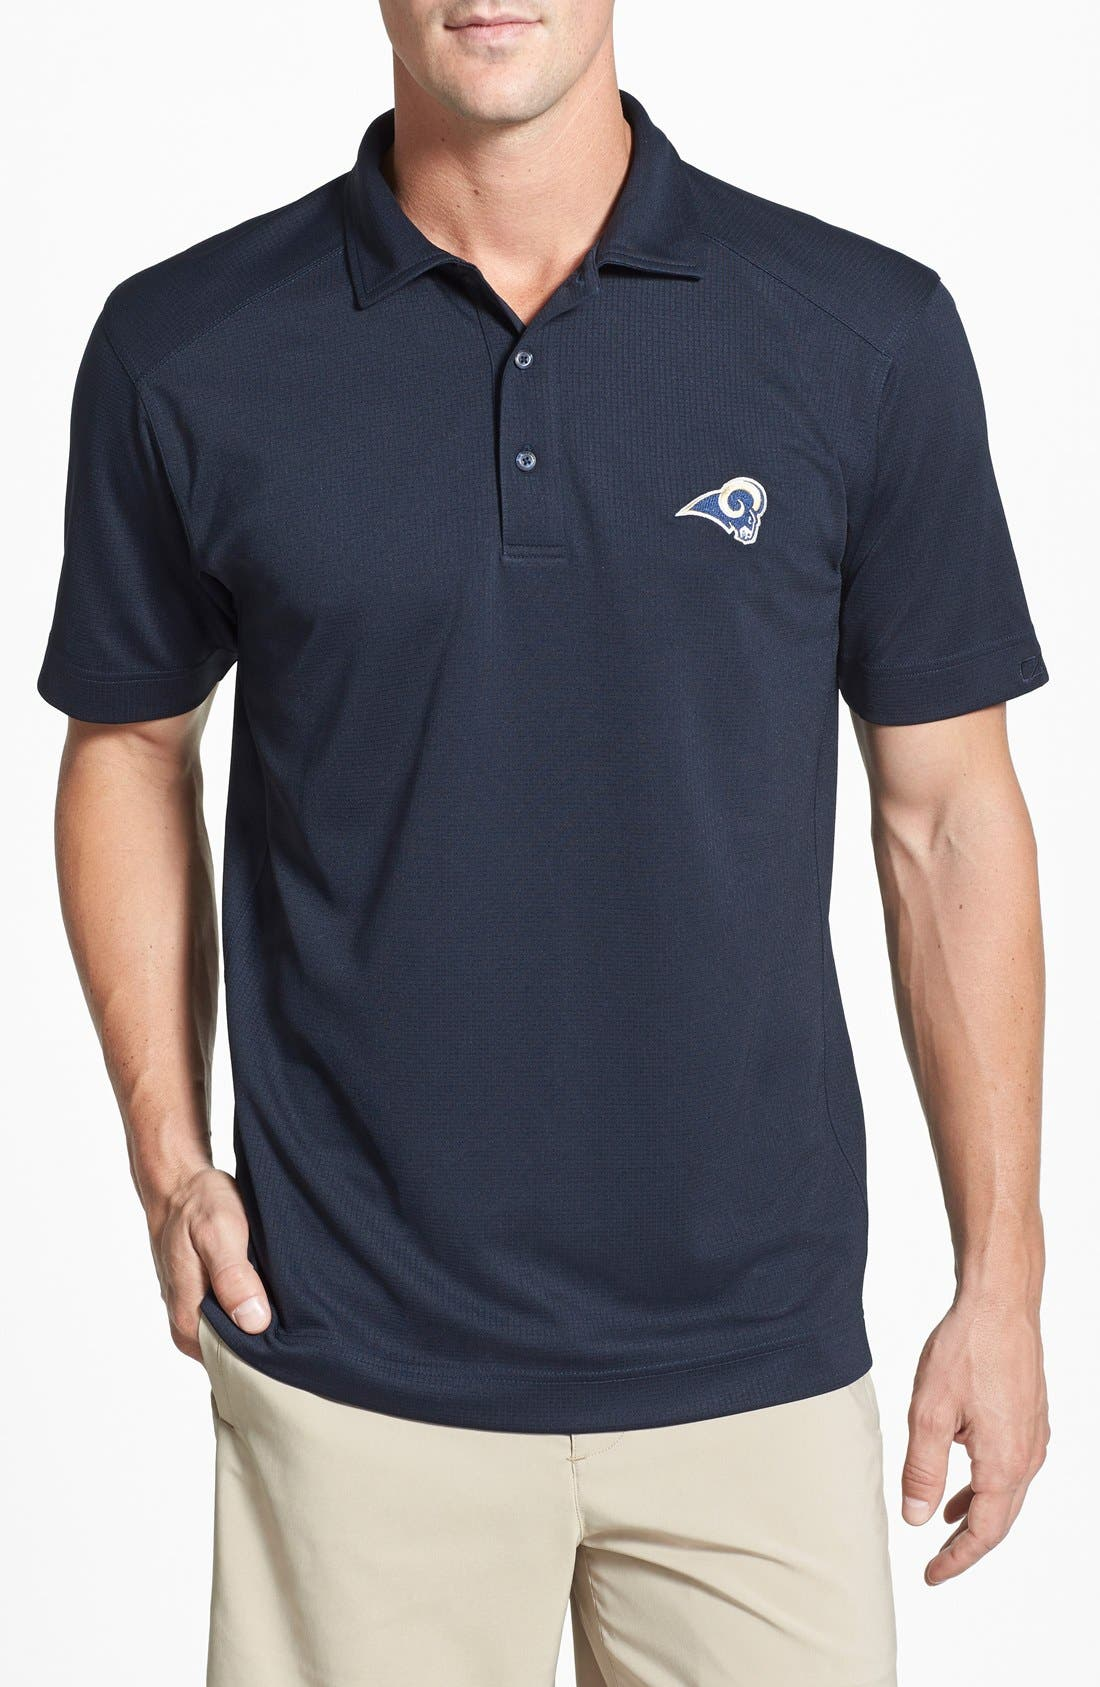 Los Angeles Rams - Genre DryTec Moisture Wicking Polo,                             Main thumbnail 1, color,                             Navy Blue